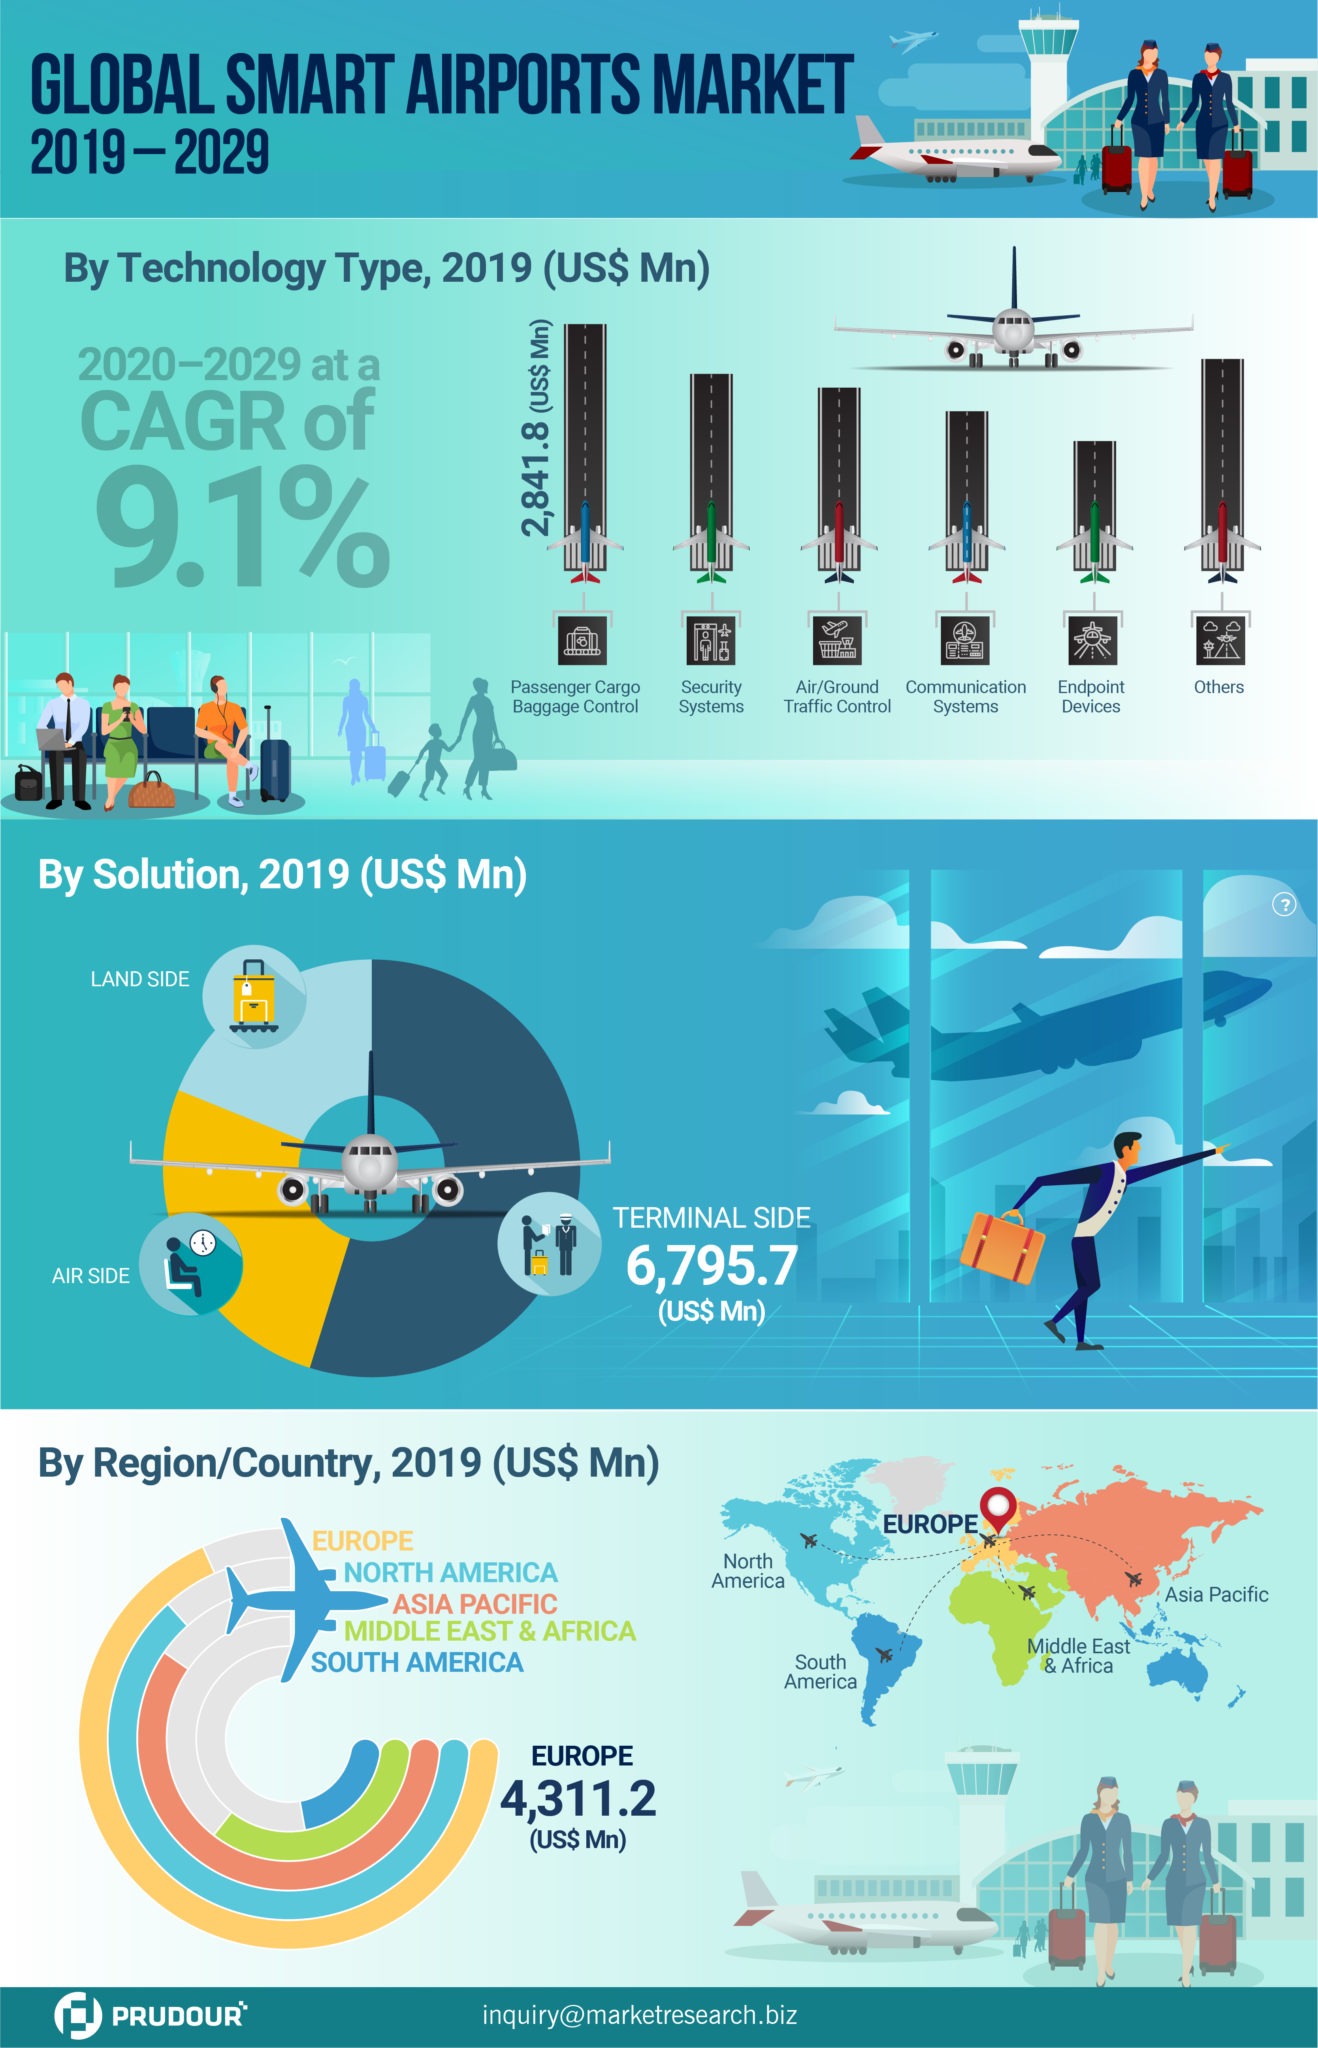 CAGR Of 9.1%: Global Smart Airports Market About To Hit CAGR of 9.1% From 2020 To 2029